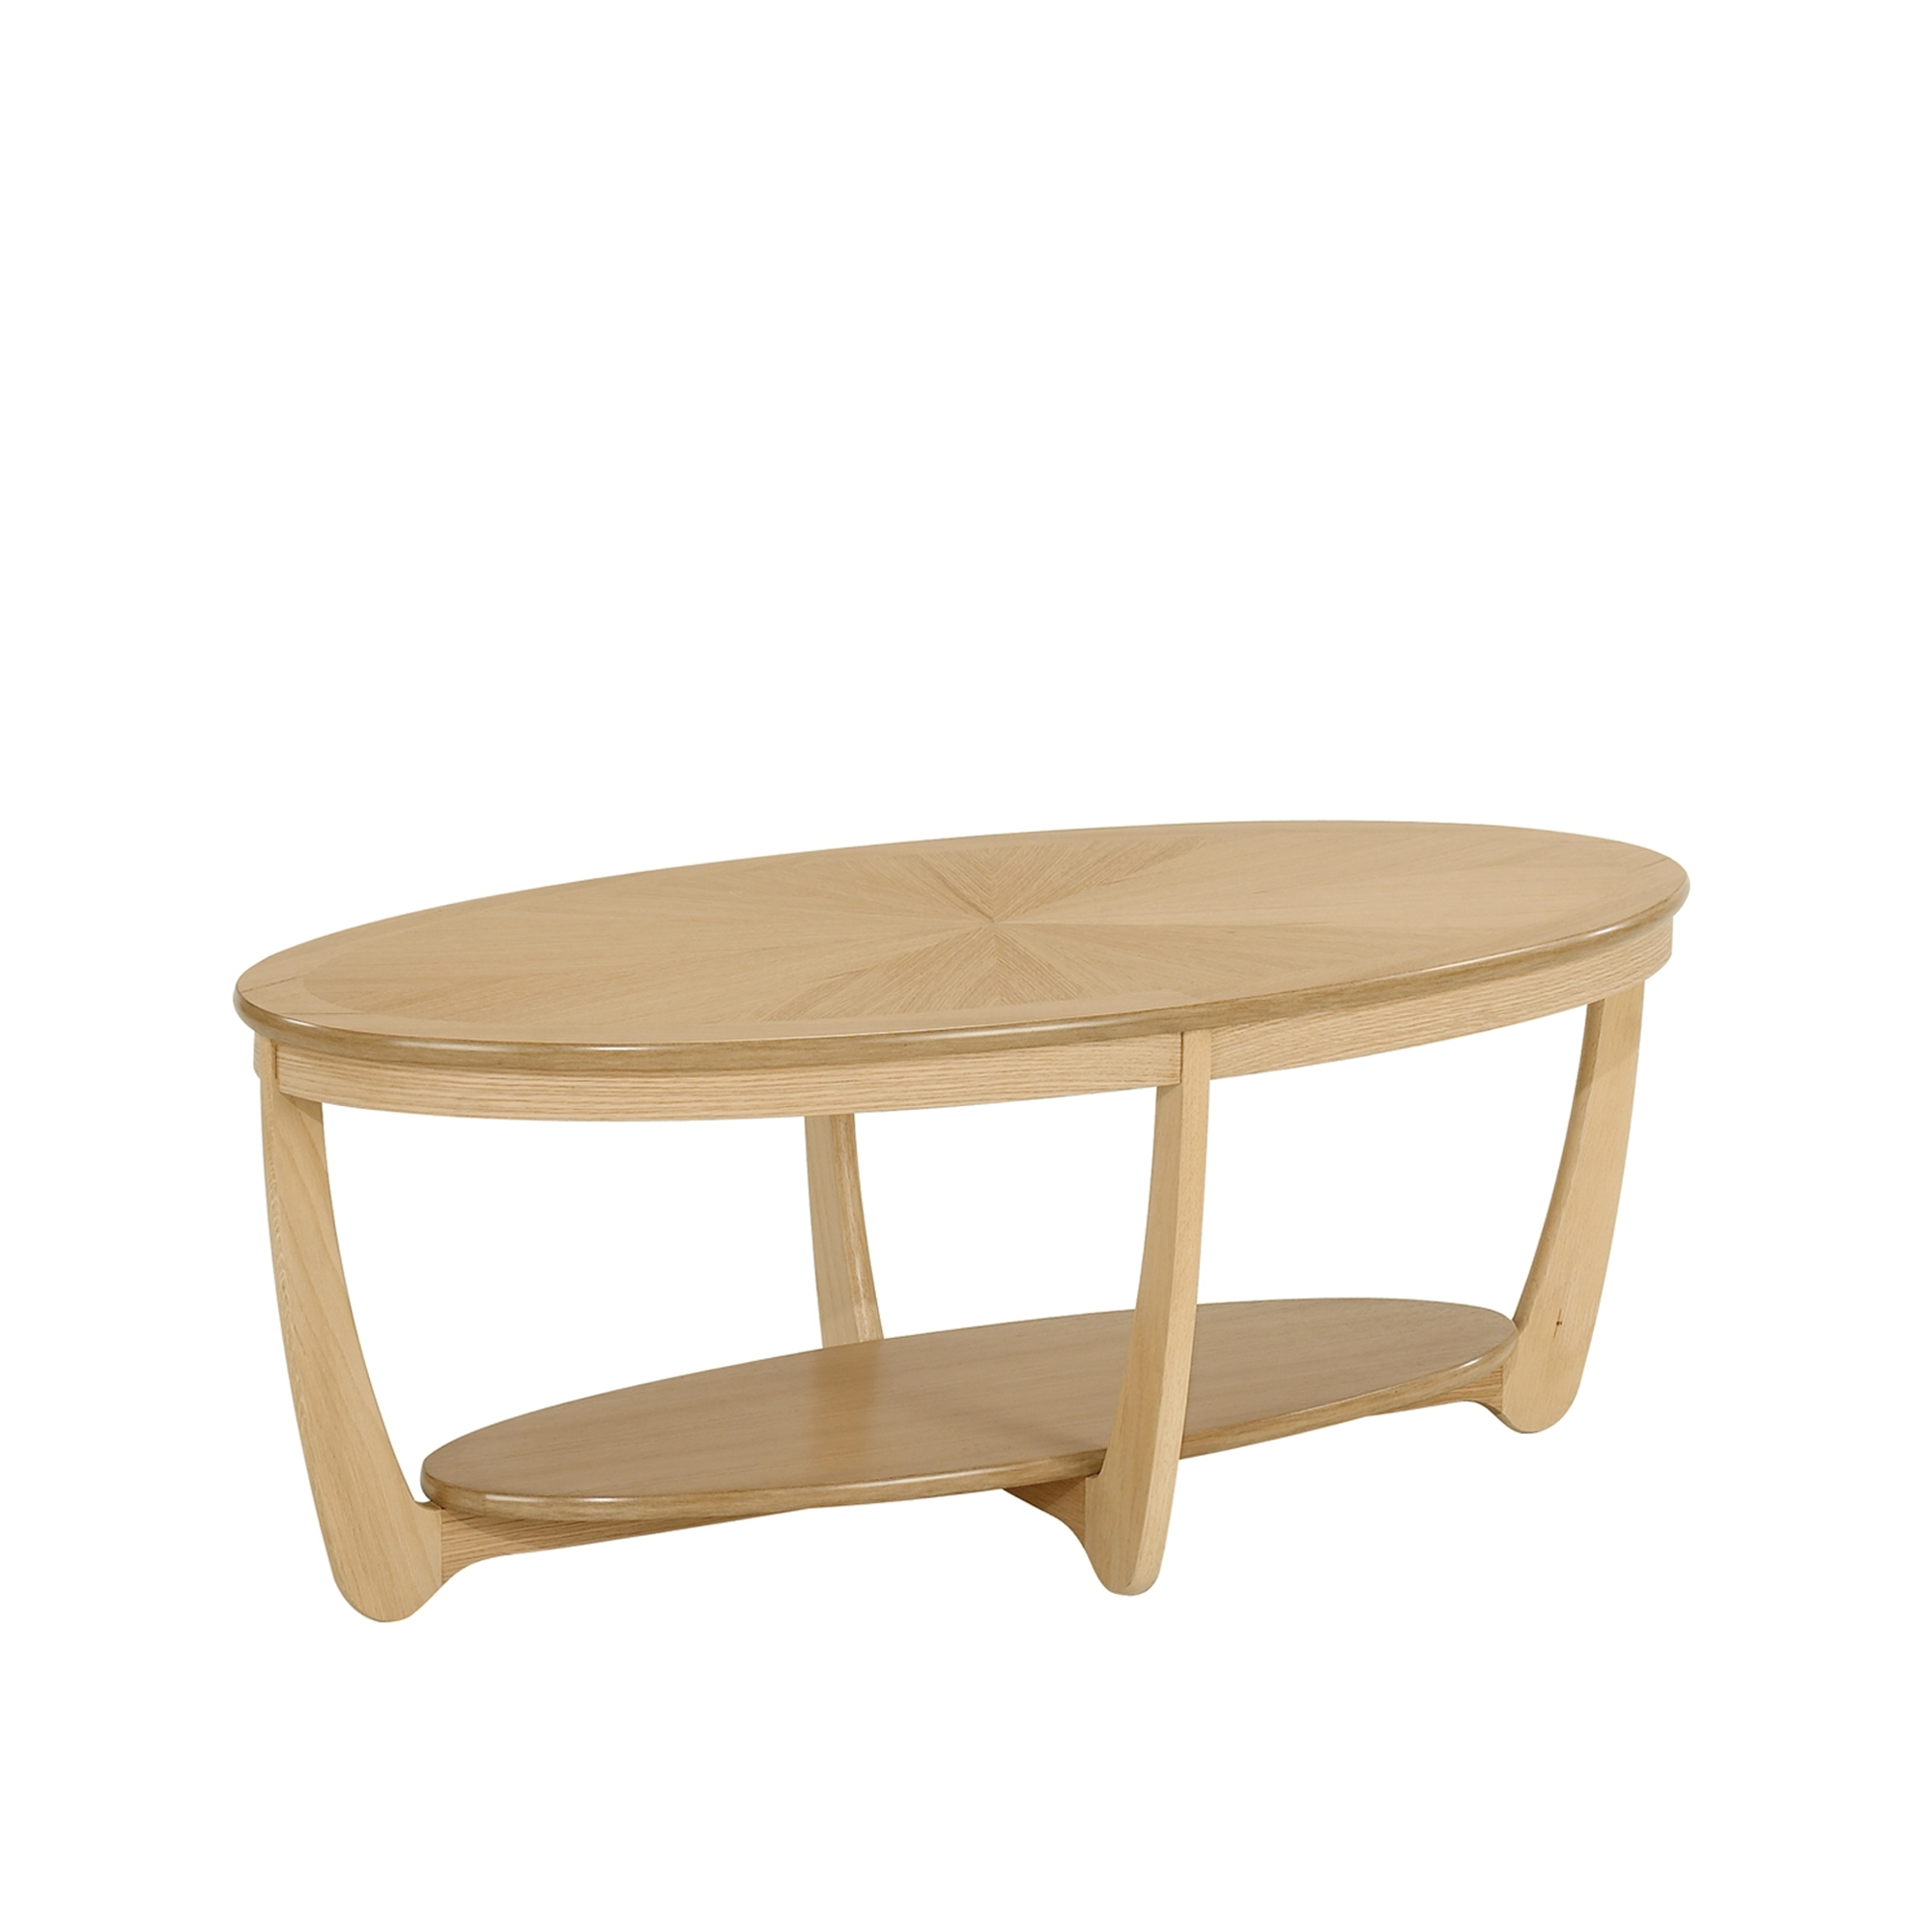 Oval Oak Coffee Table Uk: Nathan Shades Oak Sunburst Oval Coffee Table